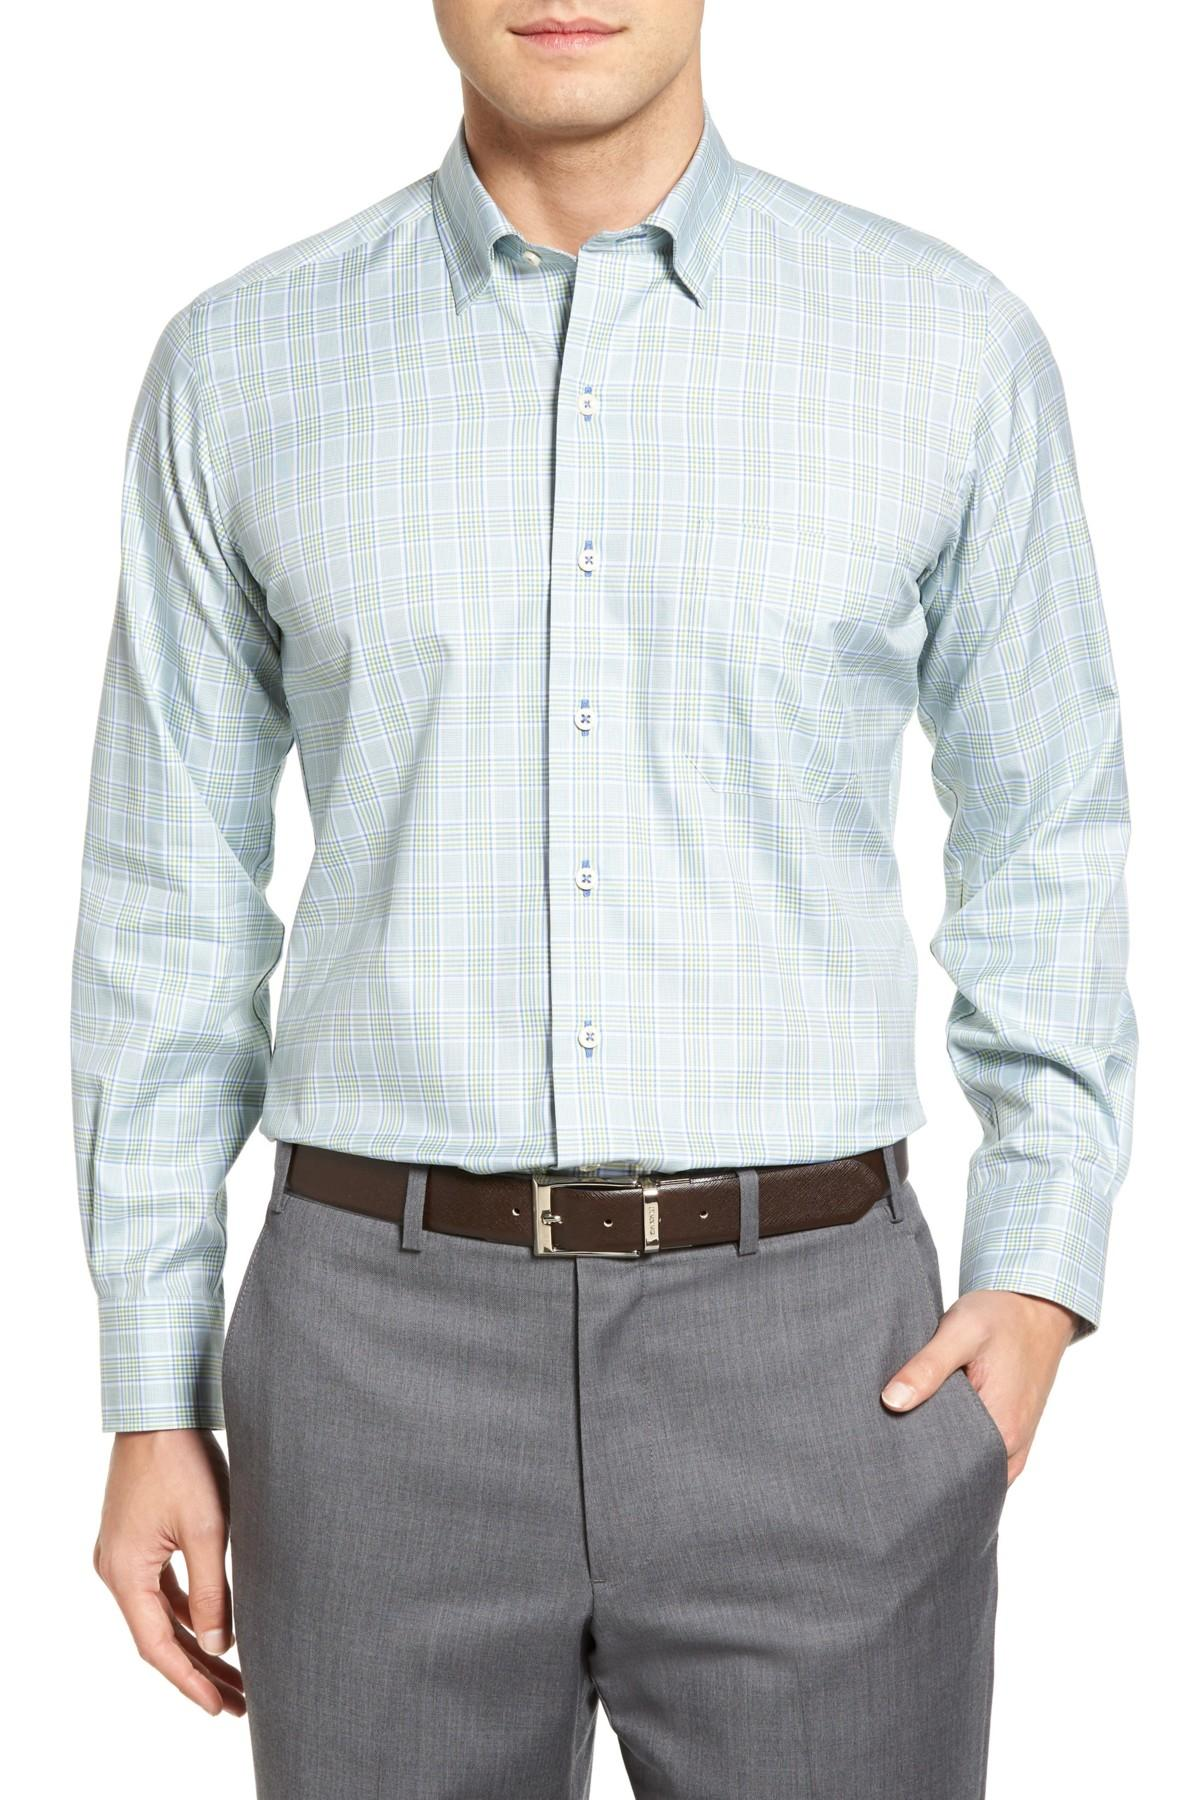 David Donahue Sport Shirt In Blue For Men Lyst